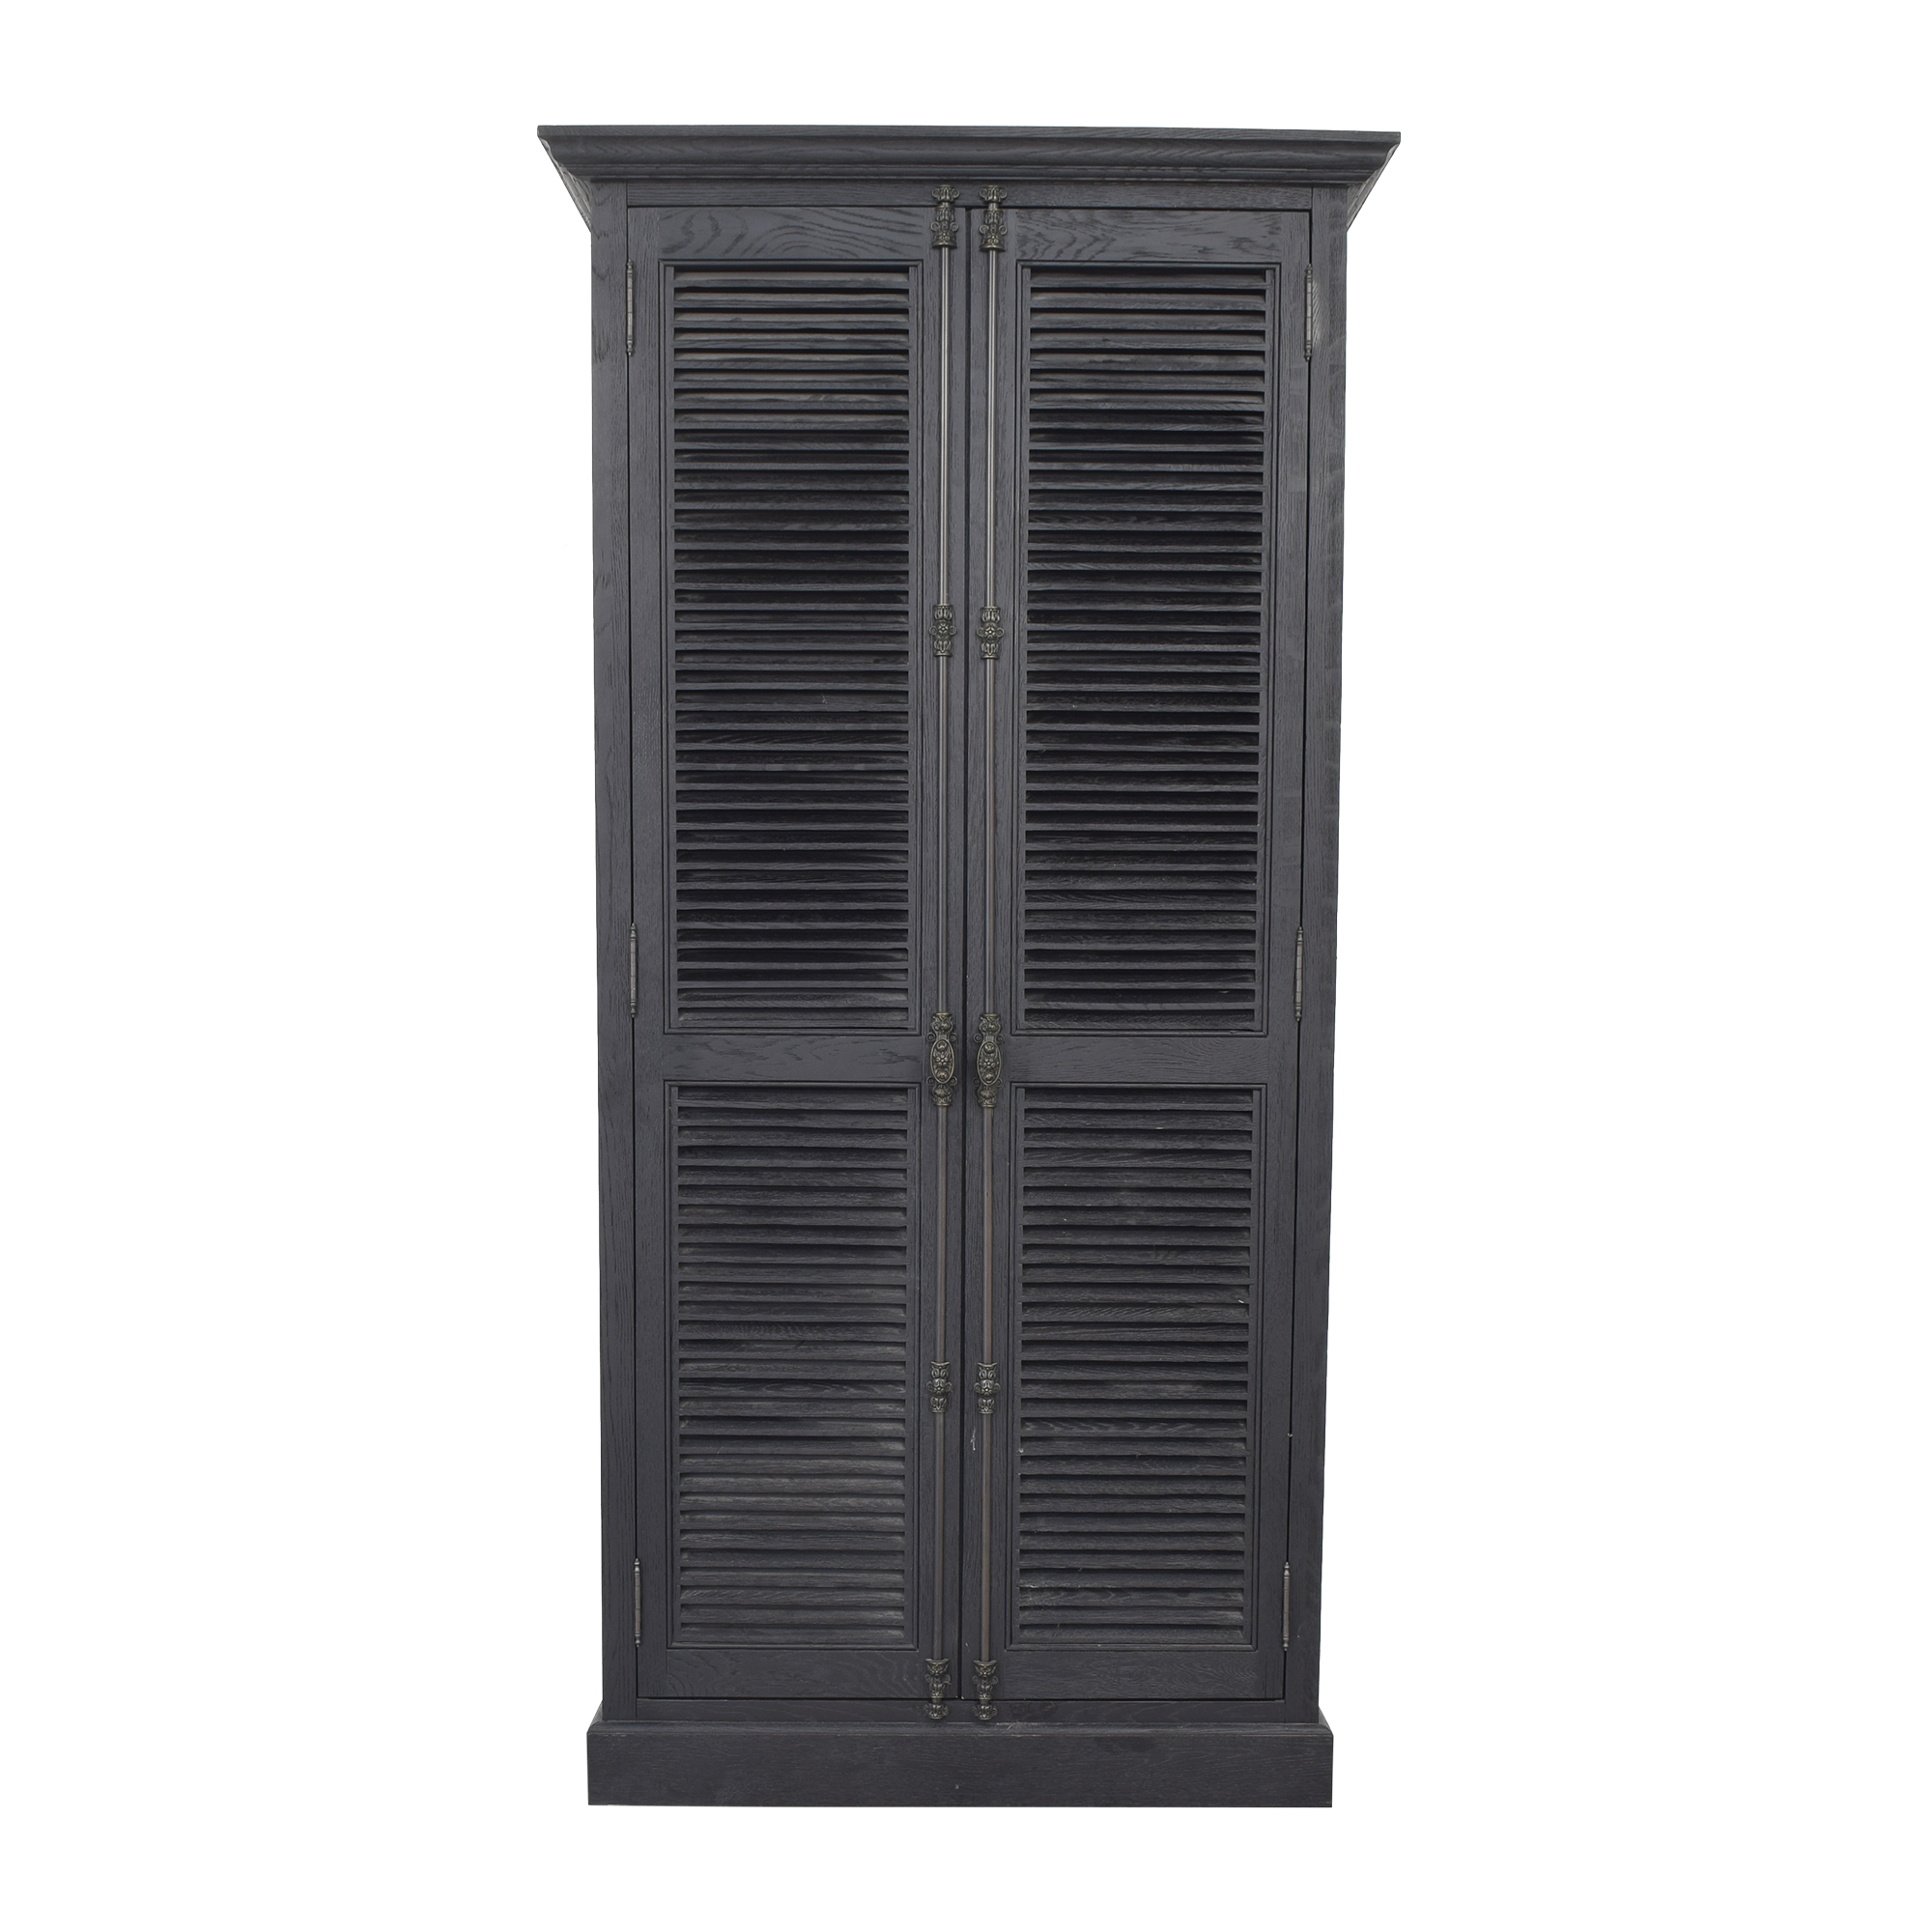 Restoration Hardware Armoire sale